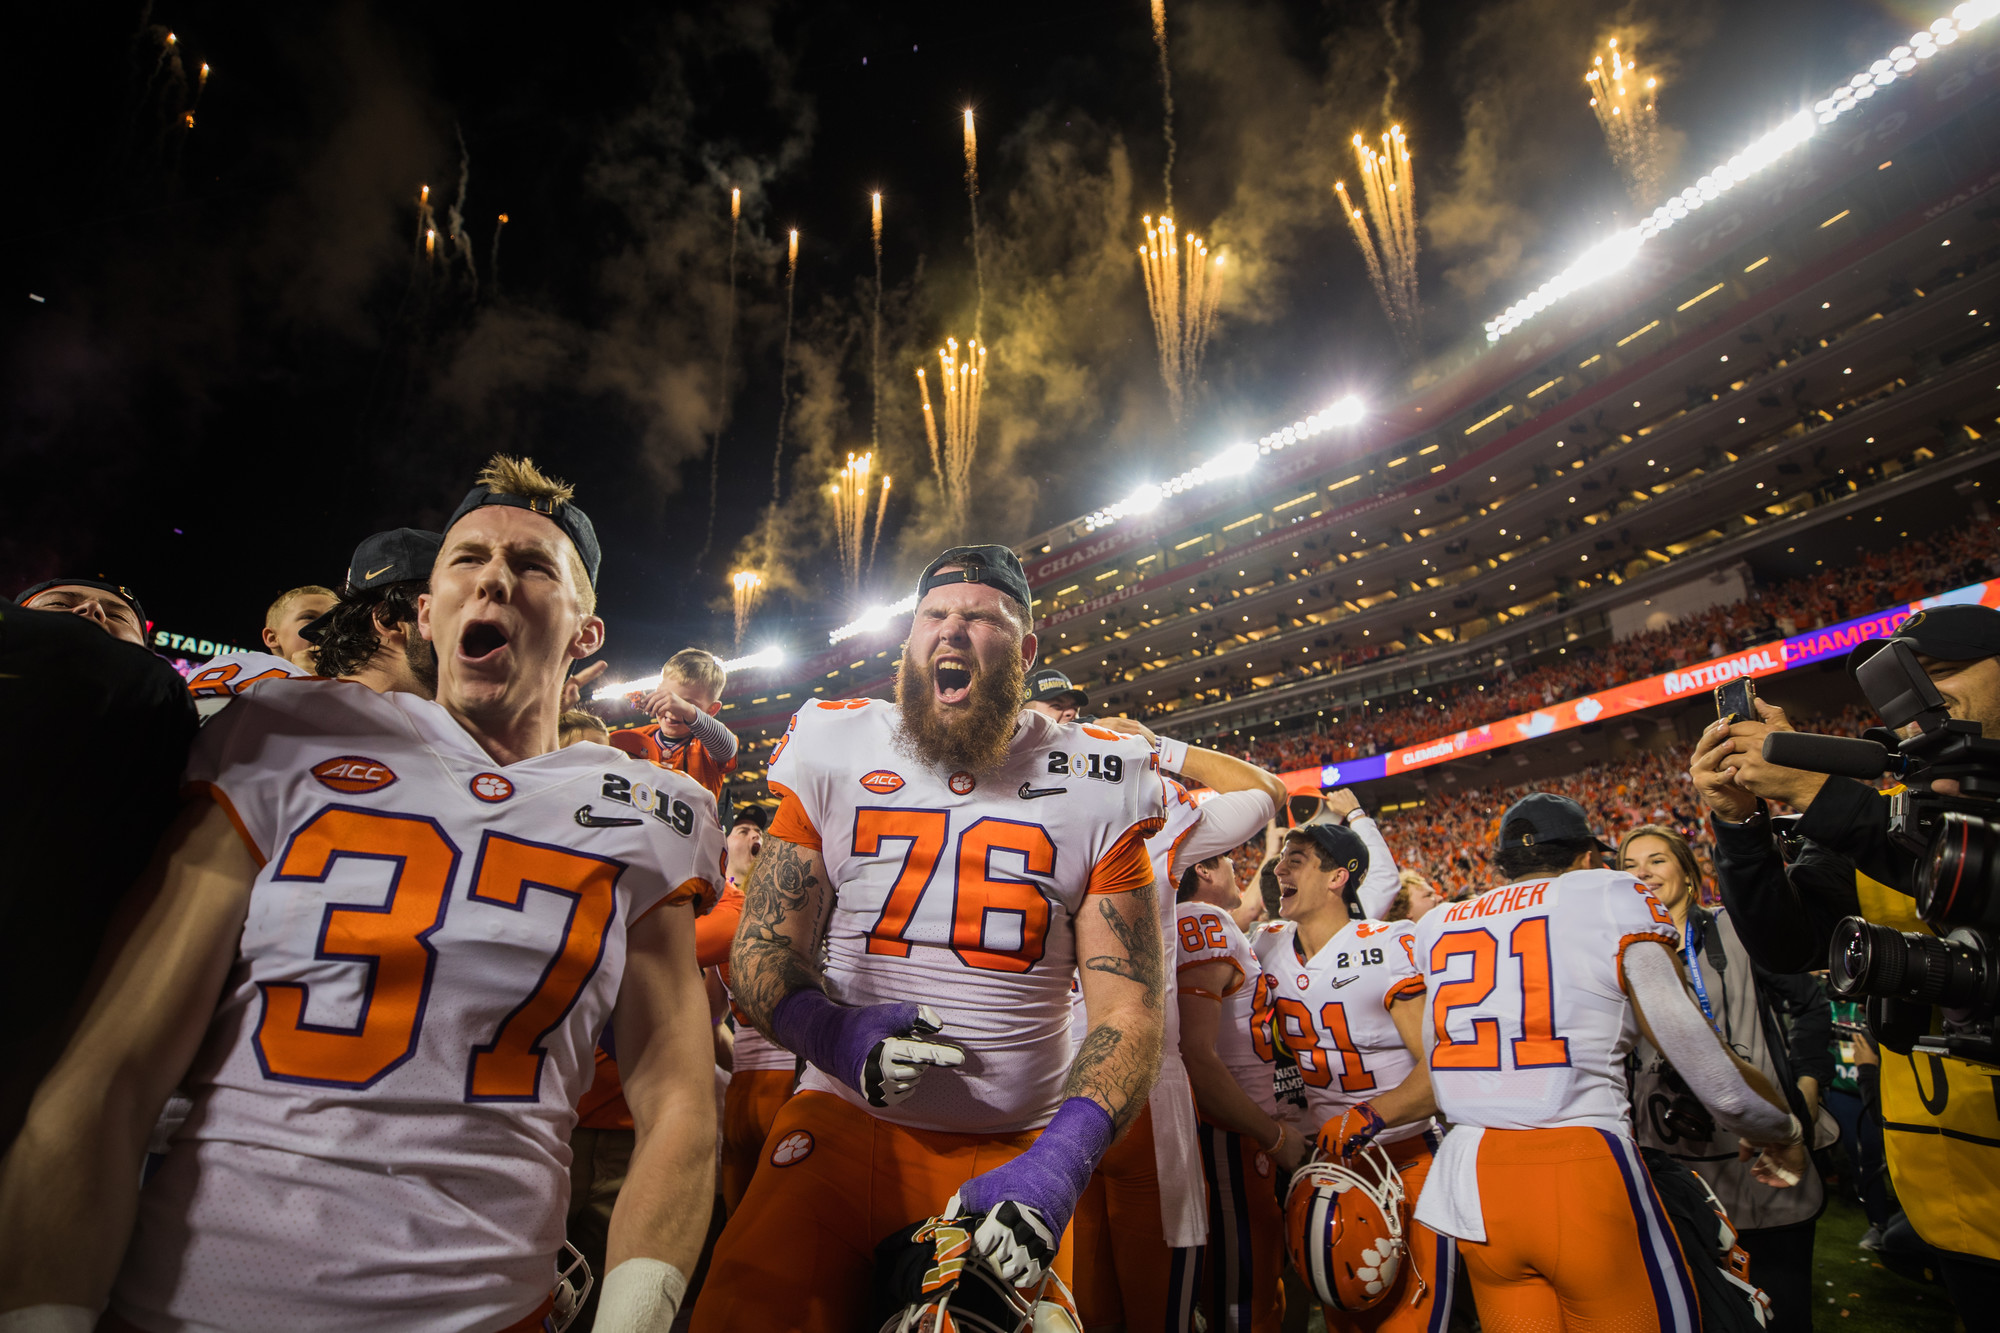 Clemson running back Ryan Mac Lain and offensive lineman Sean Pollard celebrate on the field at Levi's Stadium after the Tigers routed Alabama to win the 2019 CFP National Championship in Santa Clara, California, on Monday, Jan. 7.